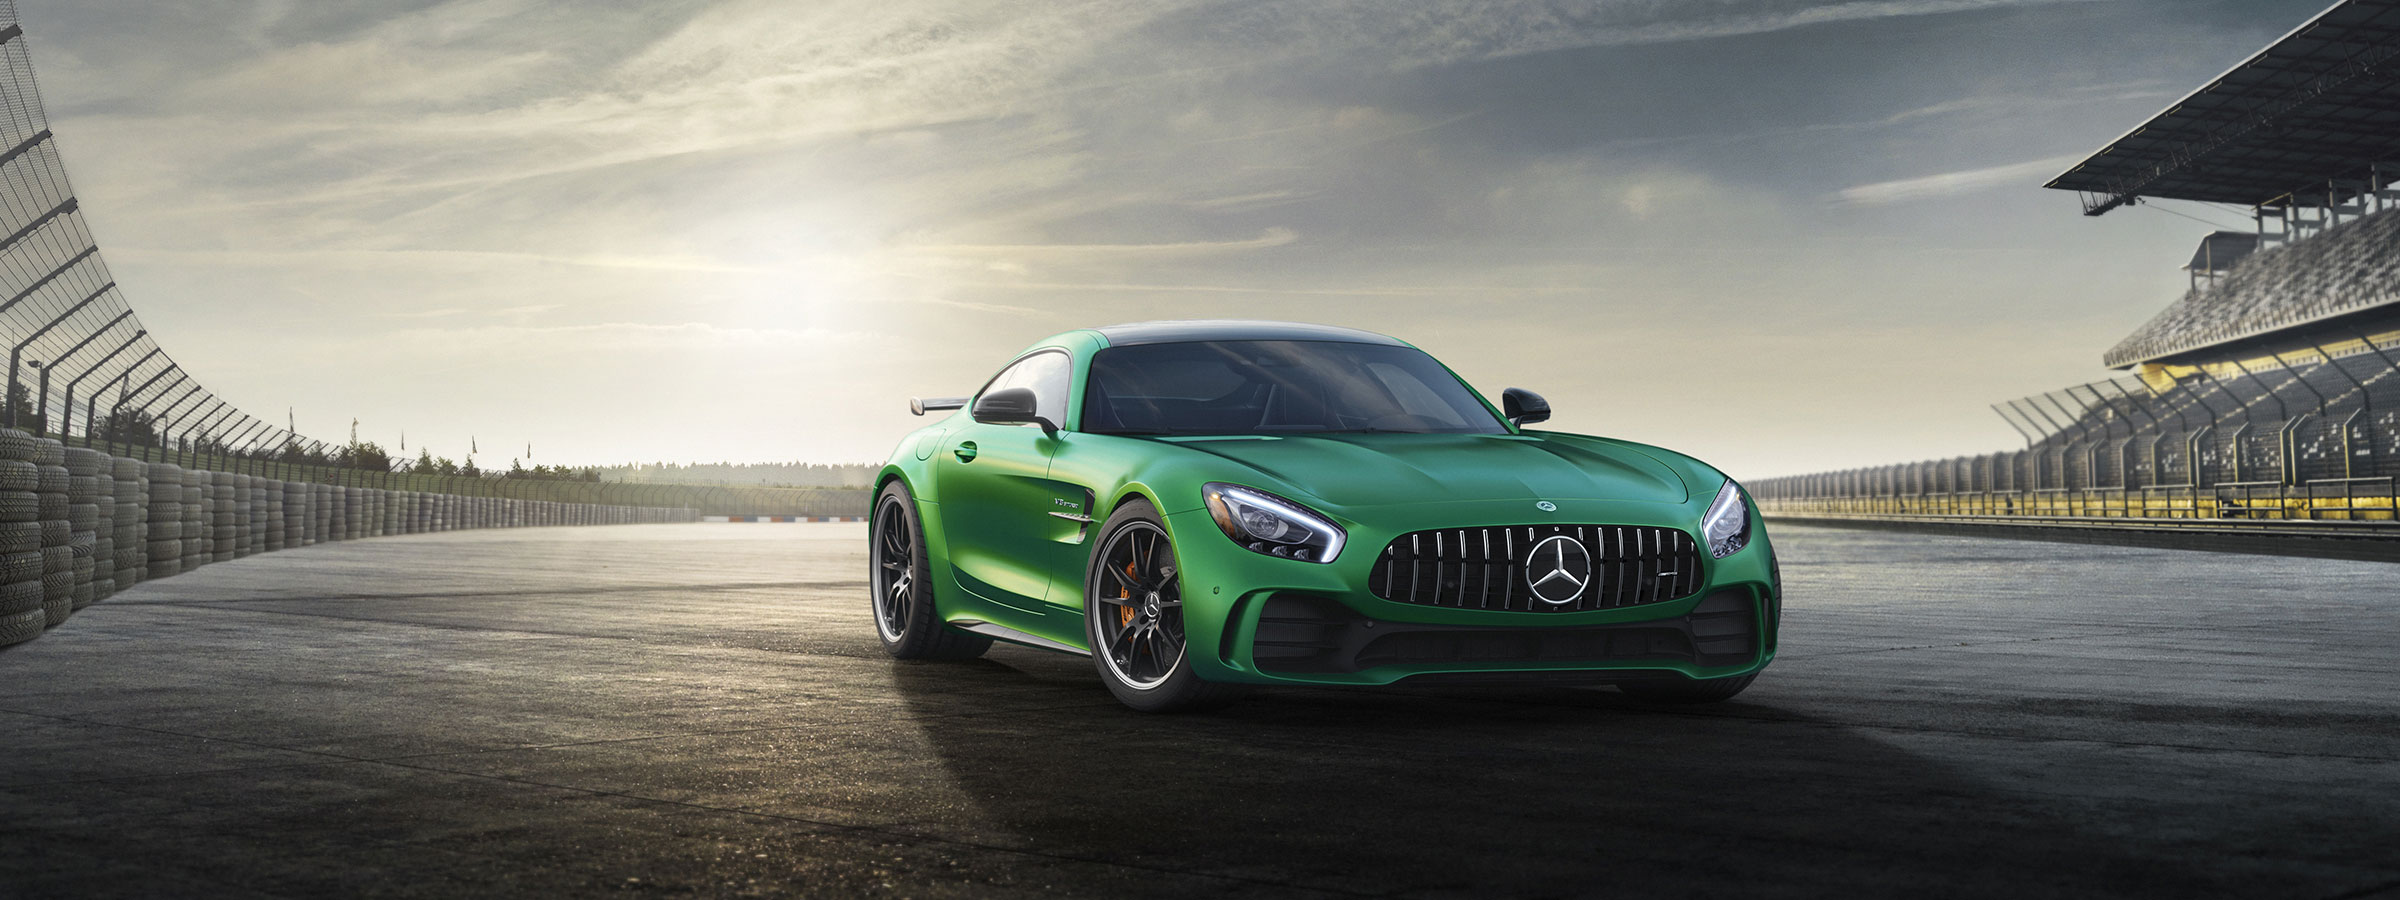 2018 mercedes-amg high performance gt coupe sports car | mercedes